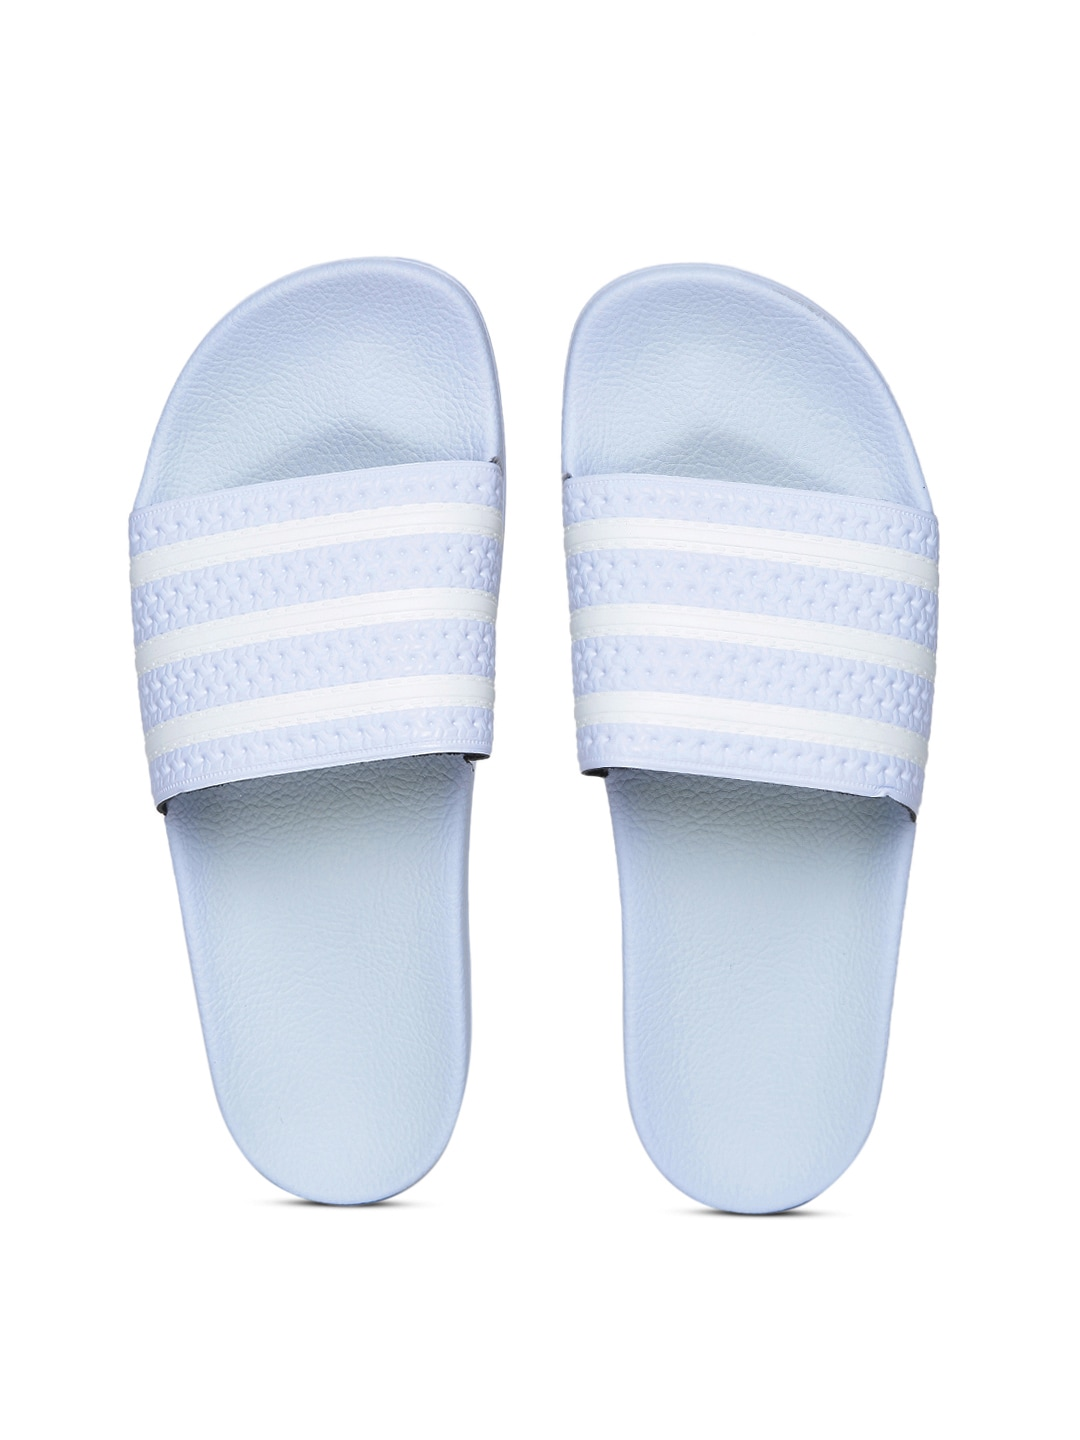 e6bcea22bd8f8 Adidas Originals Adilette Blue Slippers for Men online in India at ...